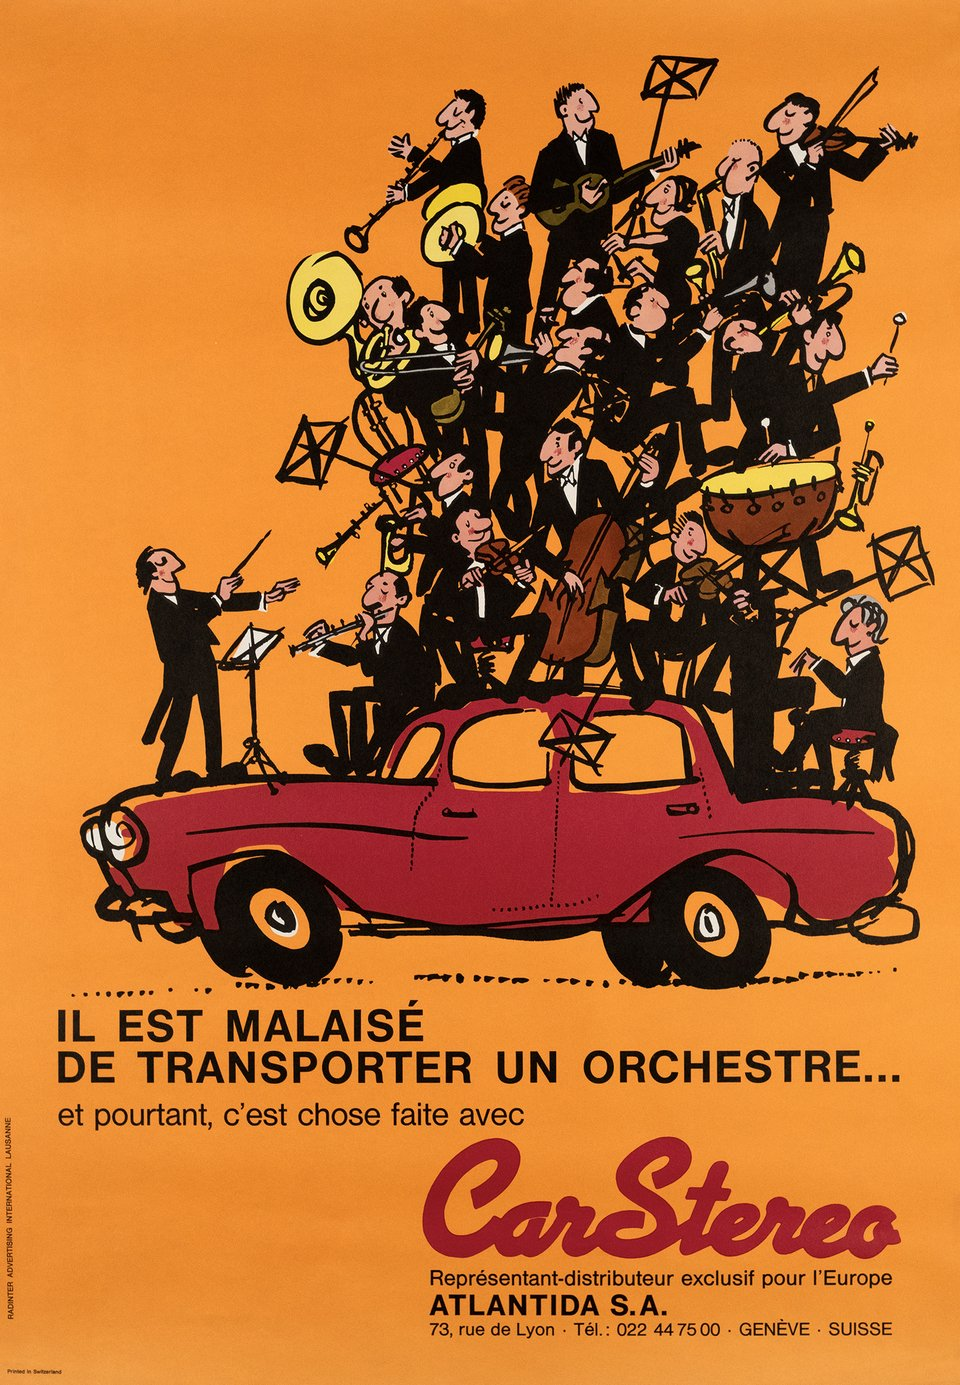 CarStereo – Affiche ancienne – RADINTER ADVERTISING INTERNATIONAL, LAUSANNE – 1965